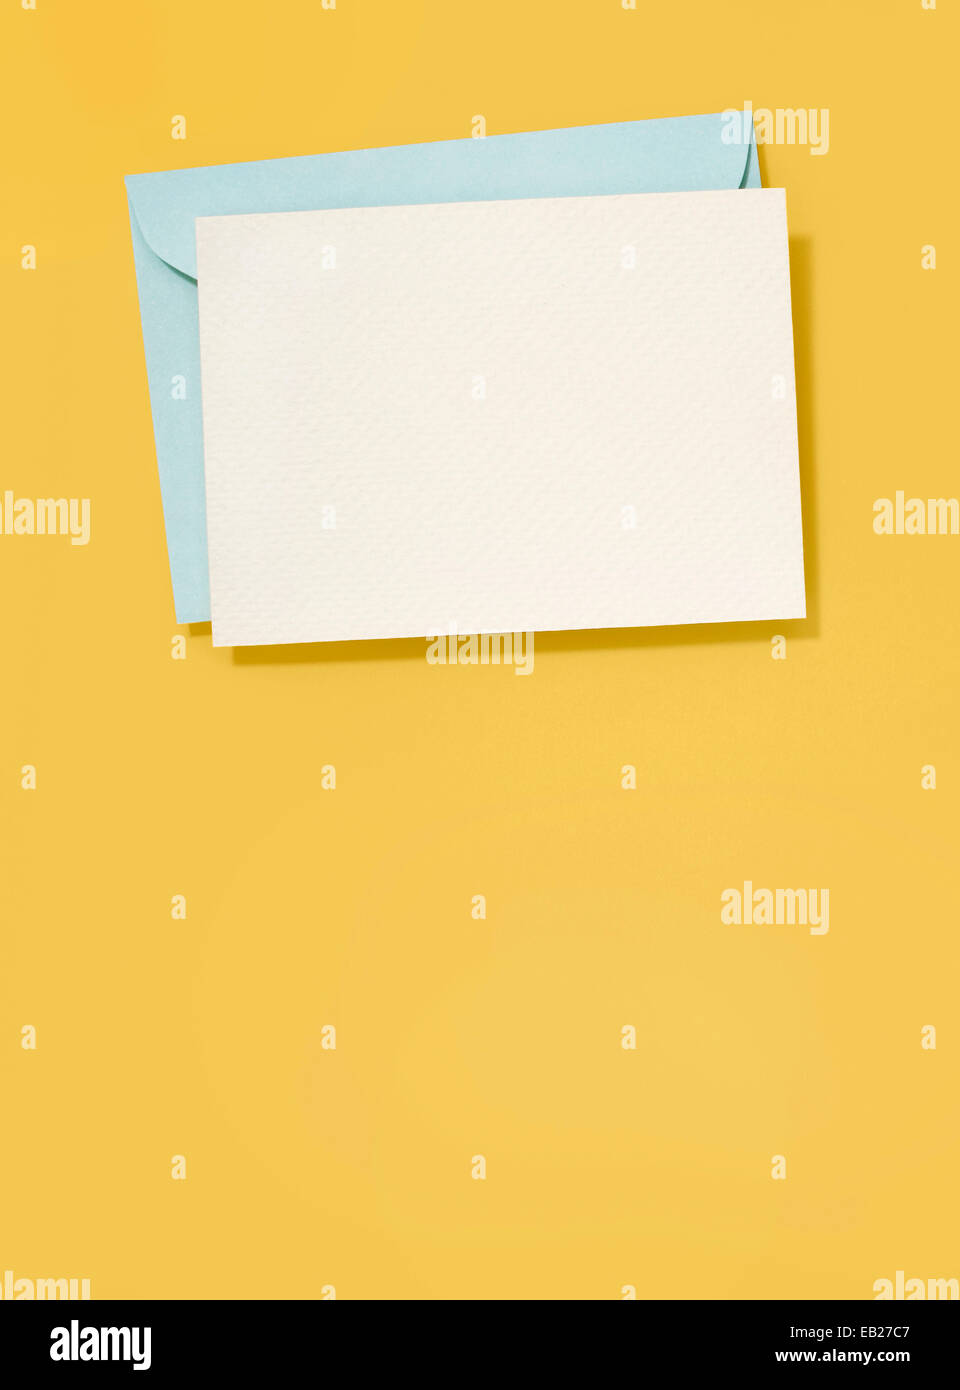 Blank Greeting Card And Envelope Stock Photo 75652423 Alamy